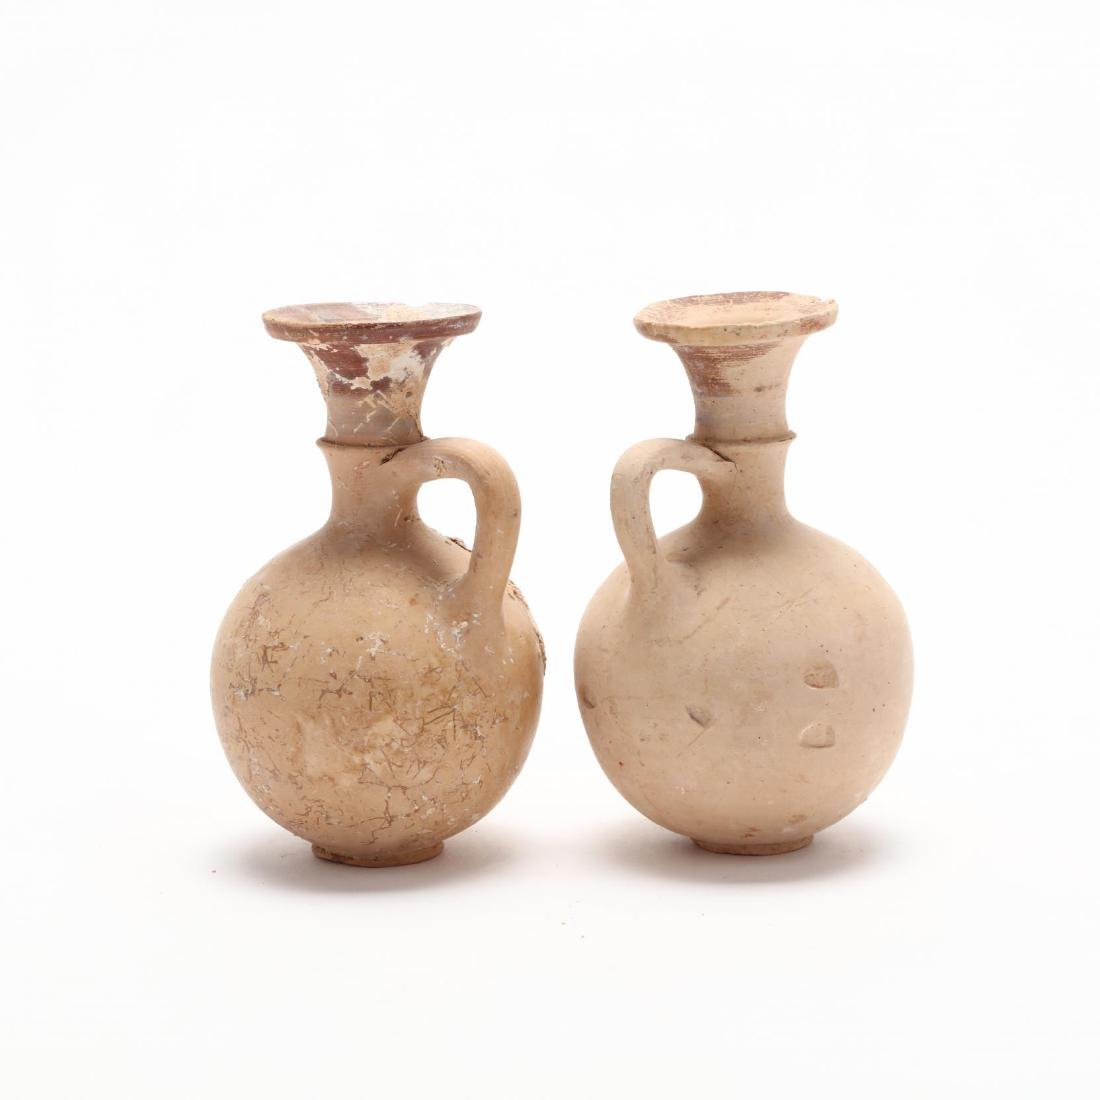 Pair of Cypro-Geometric Creme Ware Pottery Flasks - 3